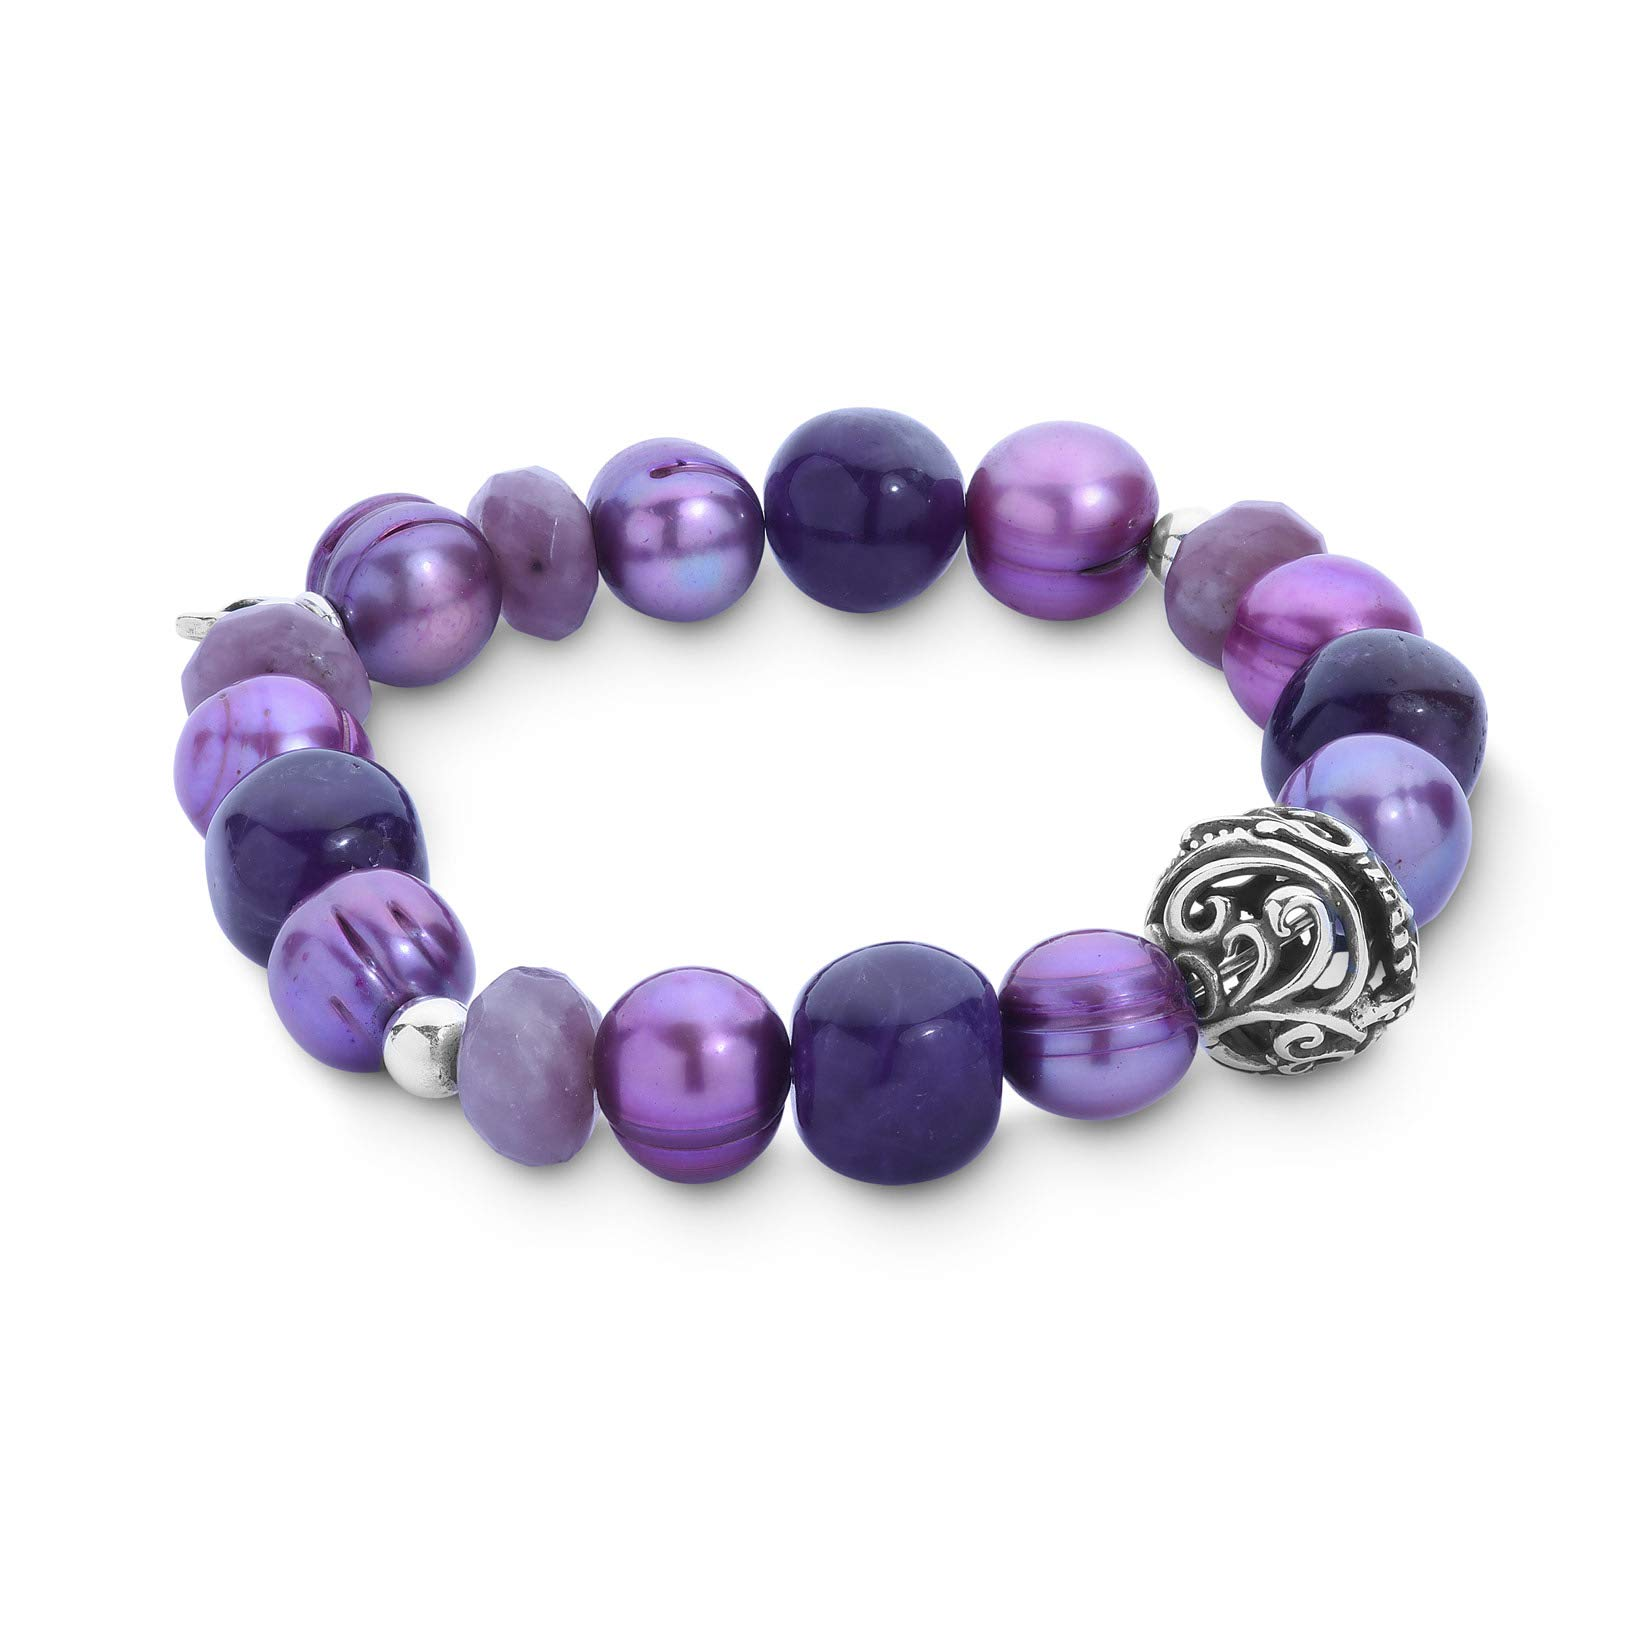 Carolyn Pollack Sterling Silver Shades of Purple Amethyst, Jade & Freshwater Cultured Pearl Stretch Bracelet - Medium to Large